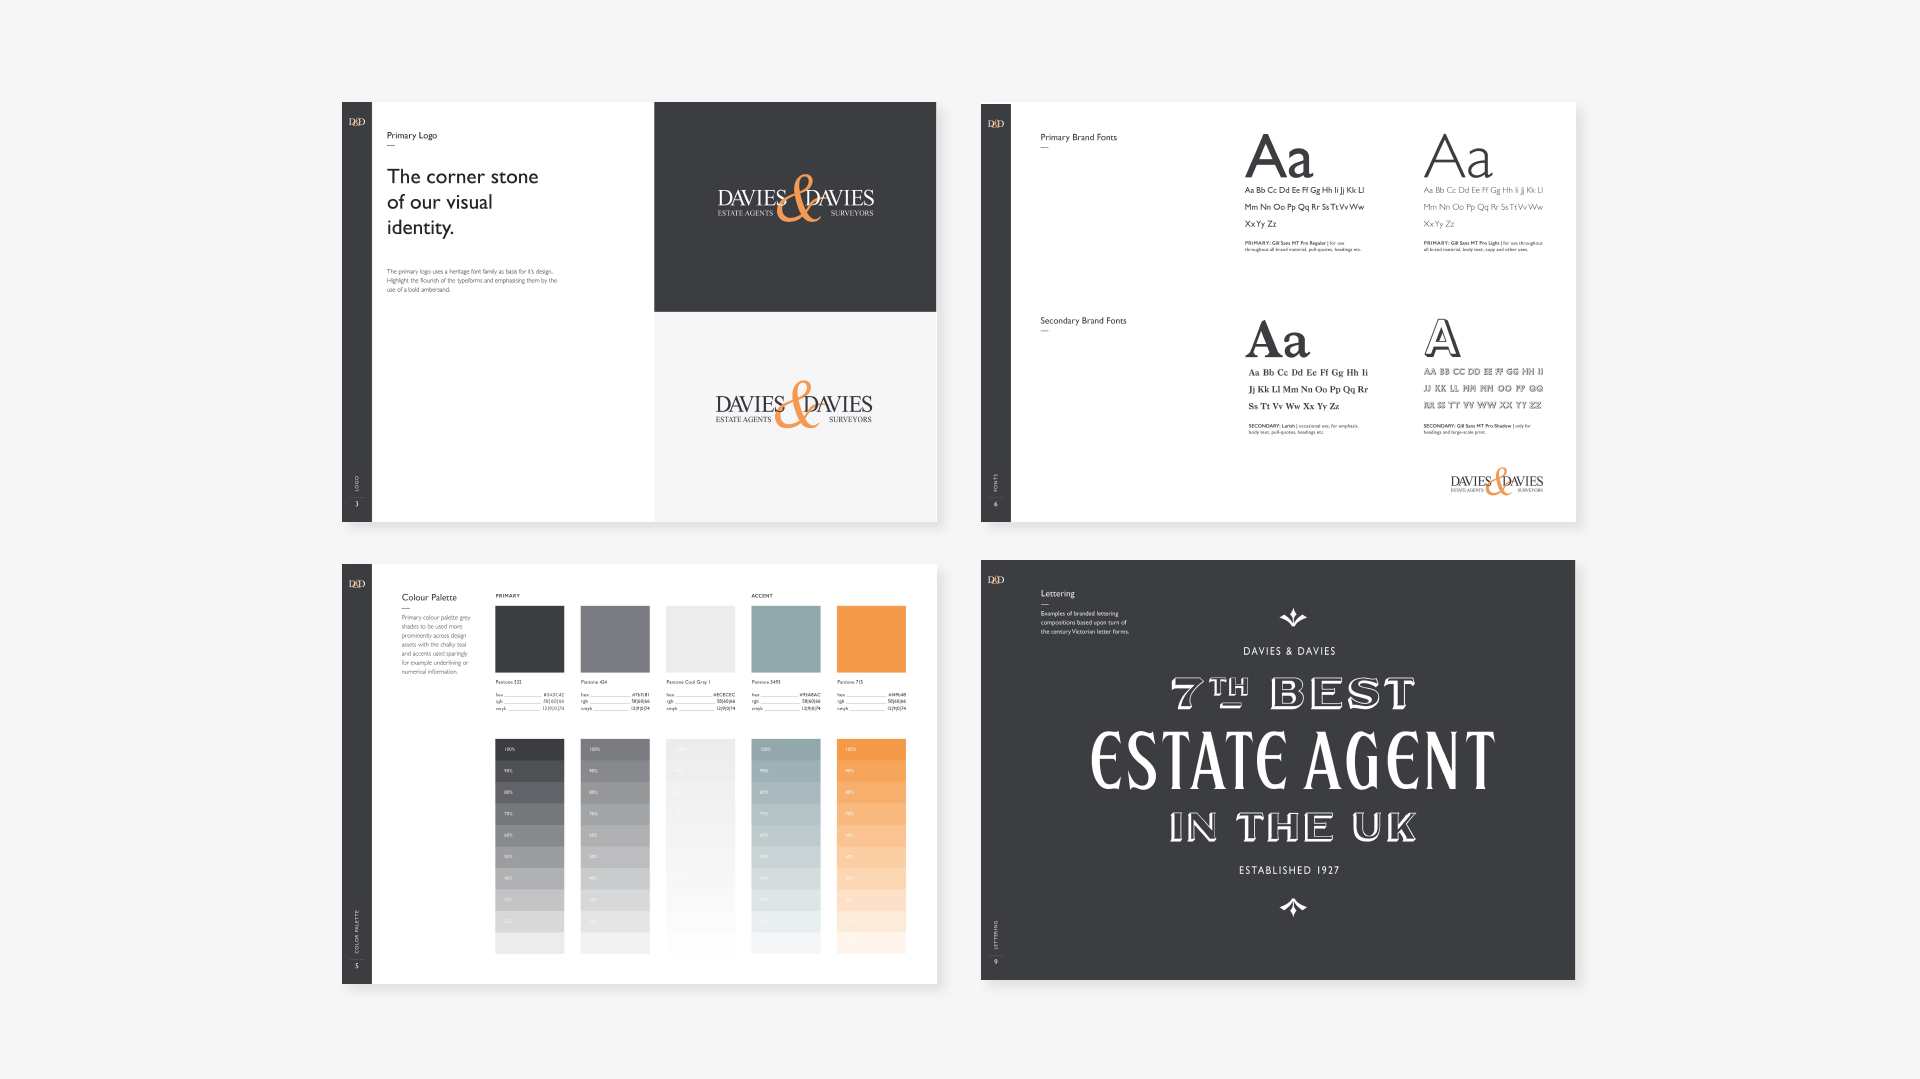 Brand Identity for North London Estate Agents, Davies & Davies. Colours, and type faces, as well as mocked up image of lettering: 7th Best Estate Agent in the UK. Graphic design by Barefaced Studios, design agency based in Islington, North London